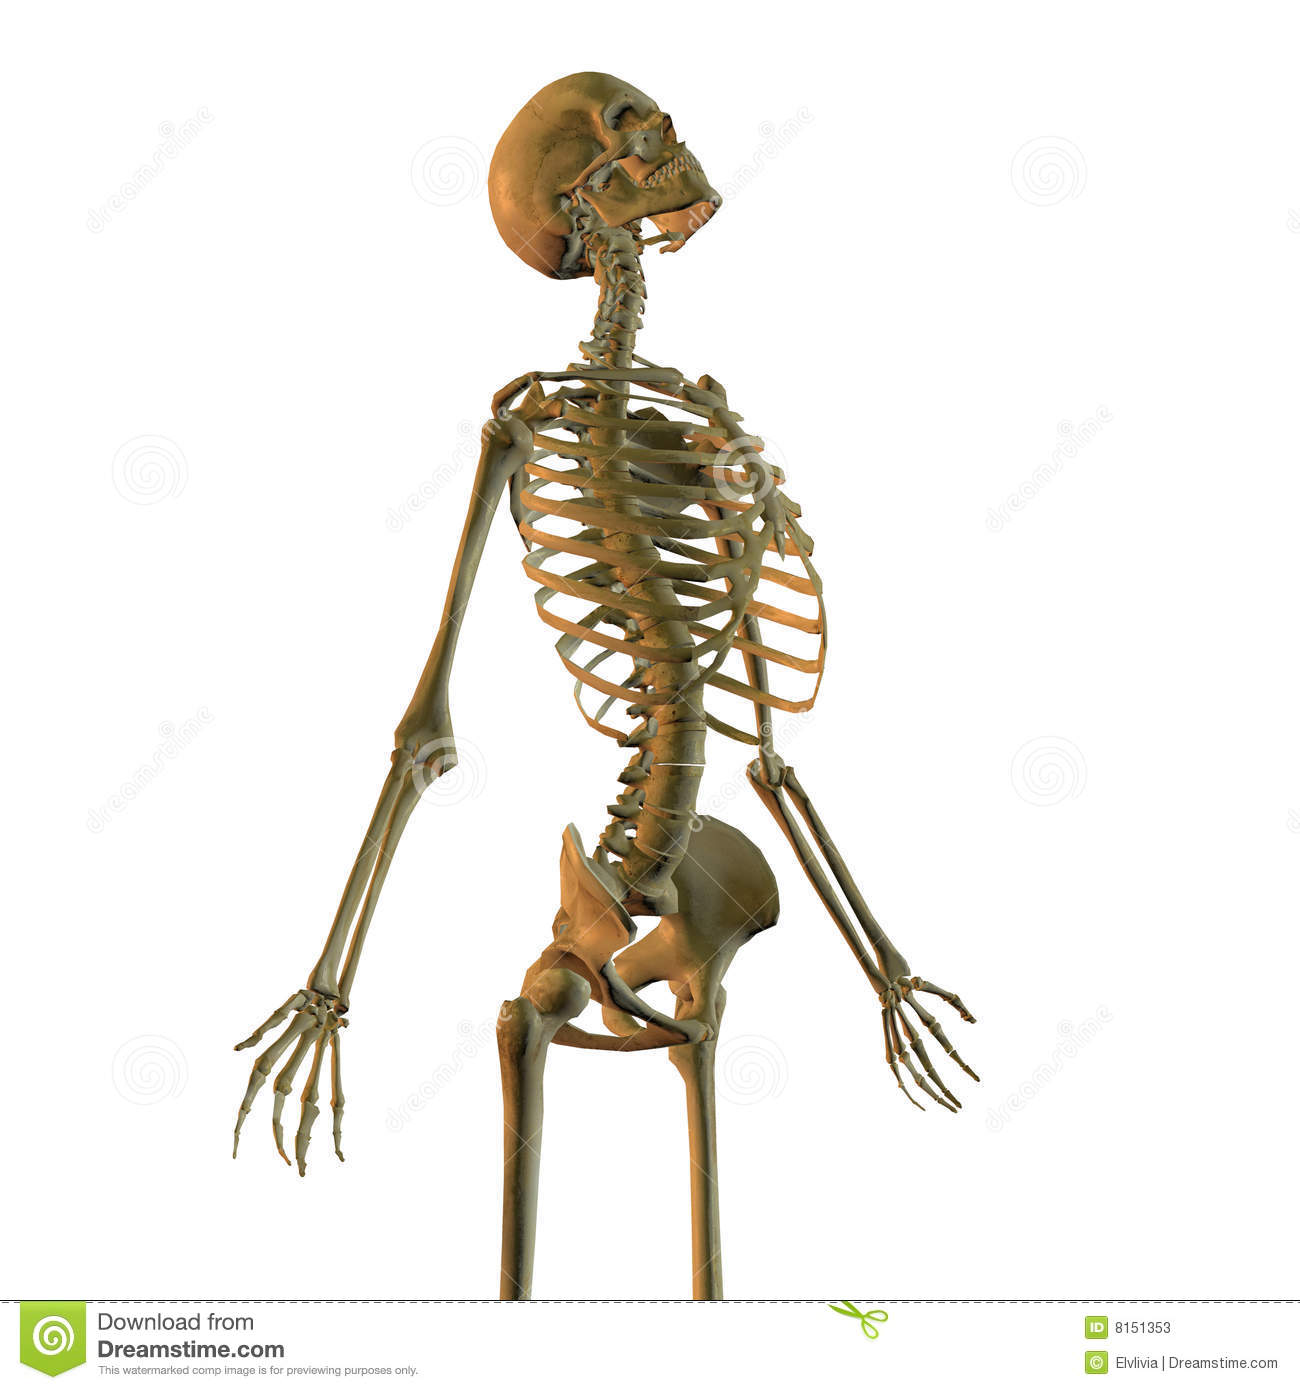 Human Skeleton Stock Illustration Illustration Of Pose 8151353